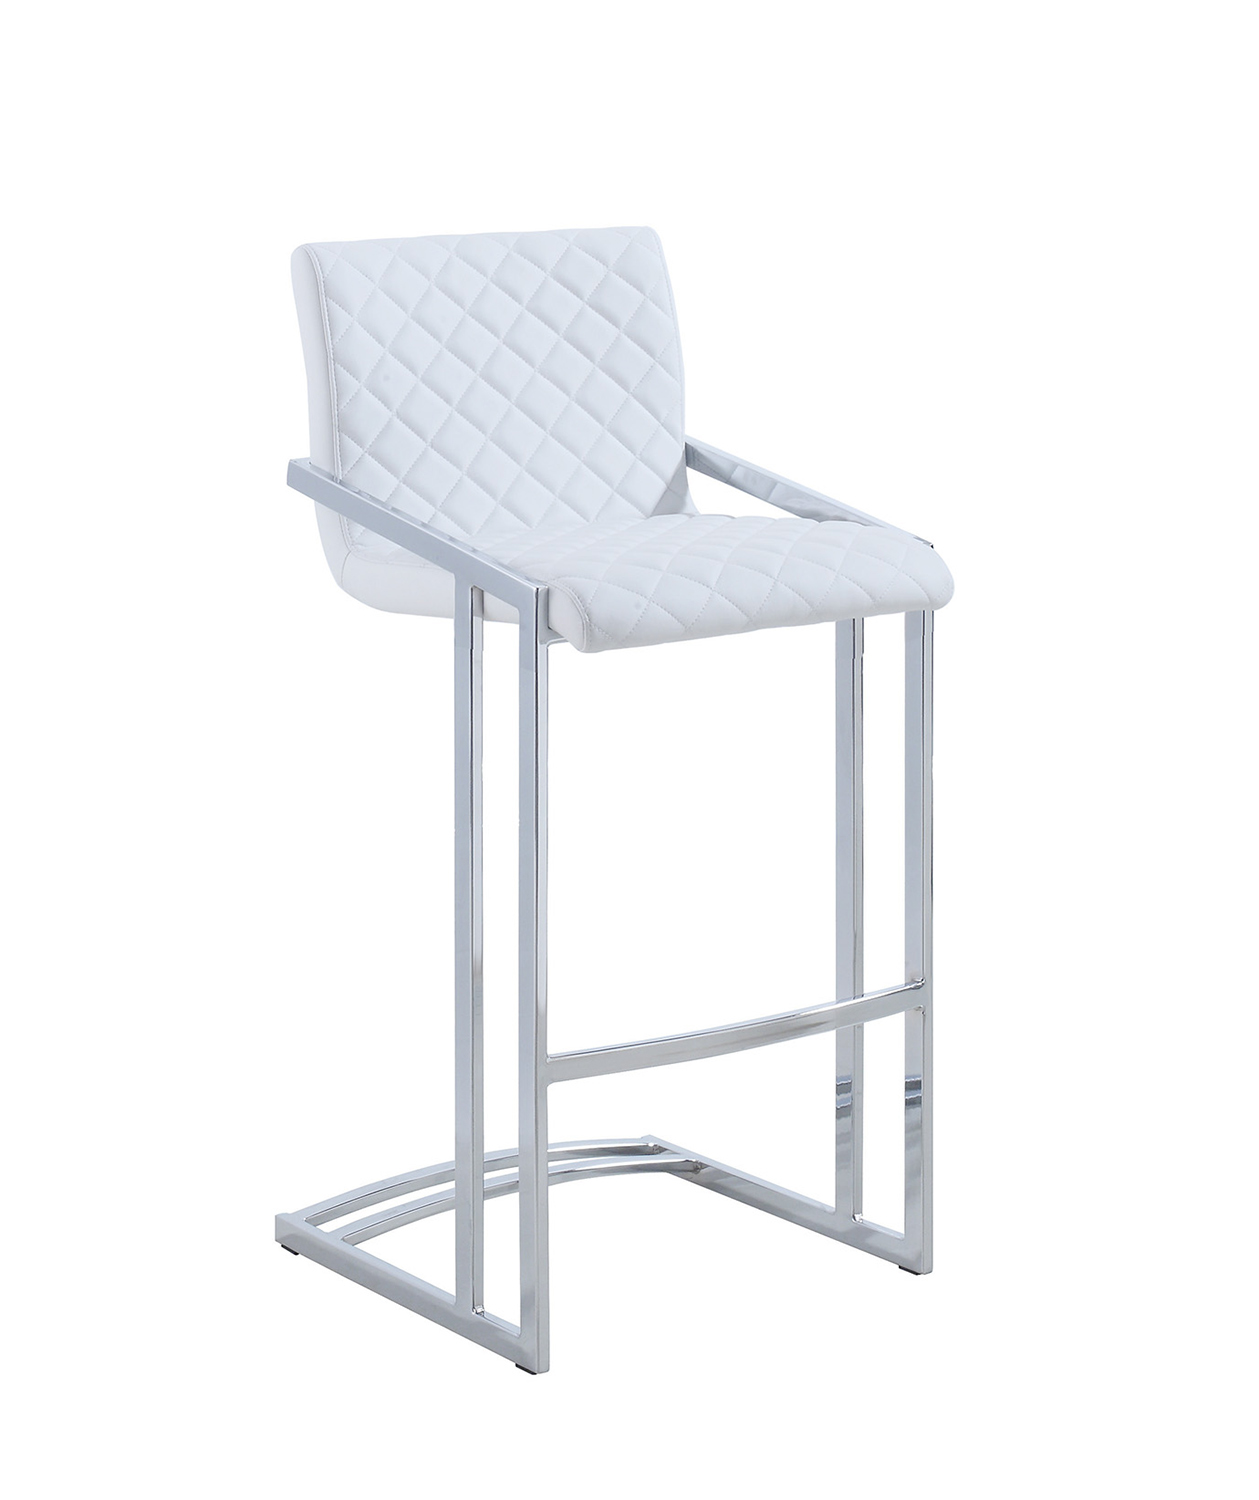 Coaster 104917 Bar Stool - White/Chrome